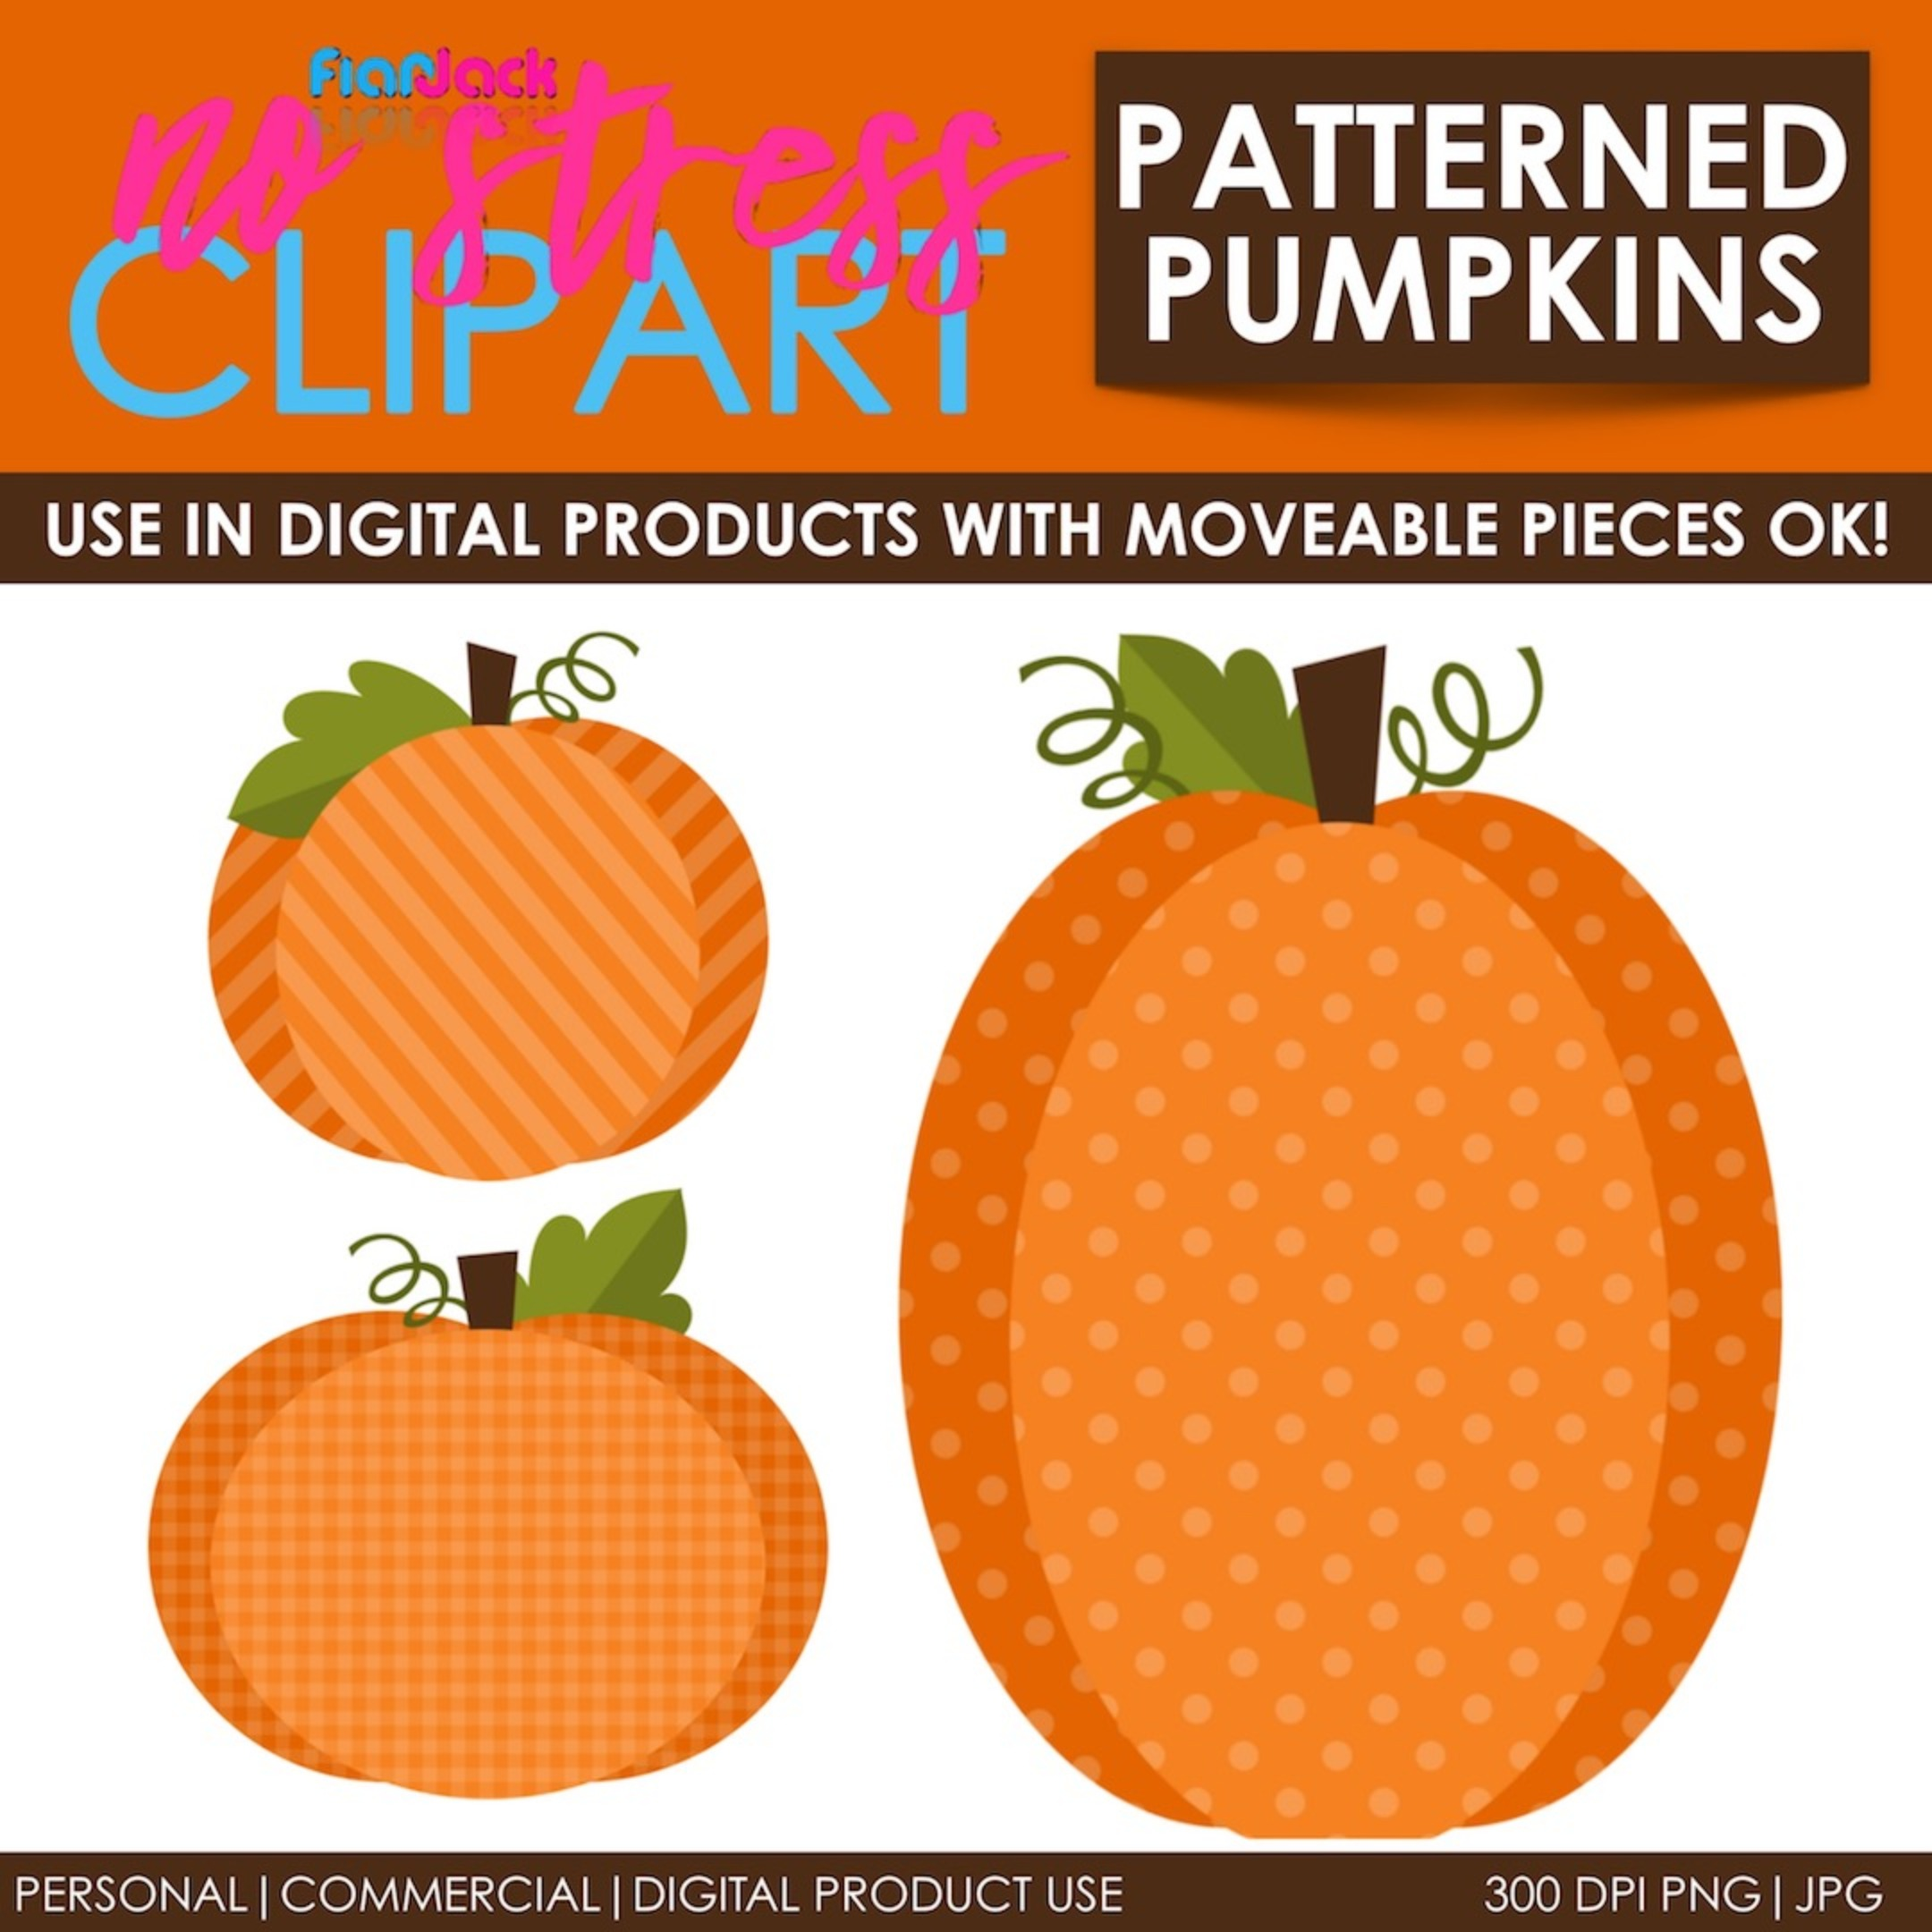 Fall Patterned Pumpkins